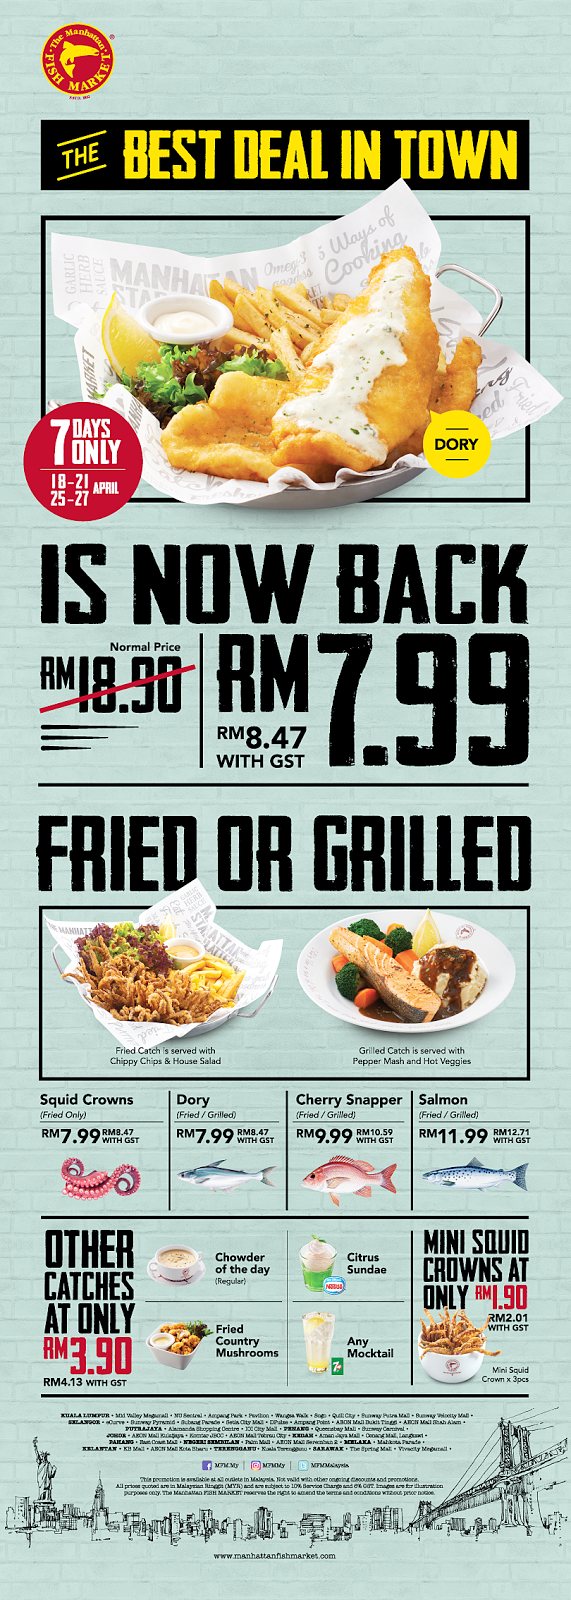 The Manhattan FISH MARKET ~ Best Deal in Town At RM 7.99 For Fish 'N' Chips